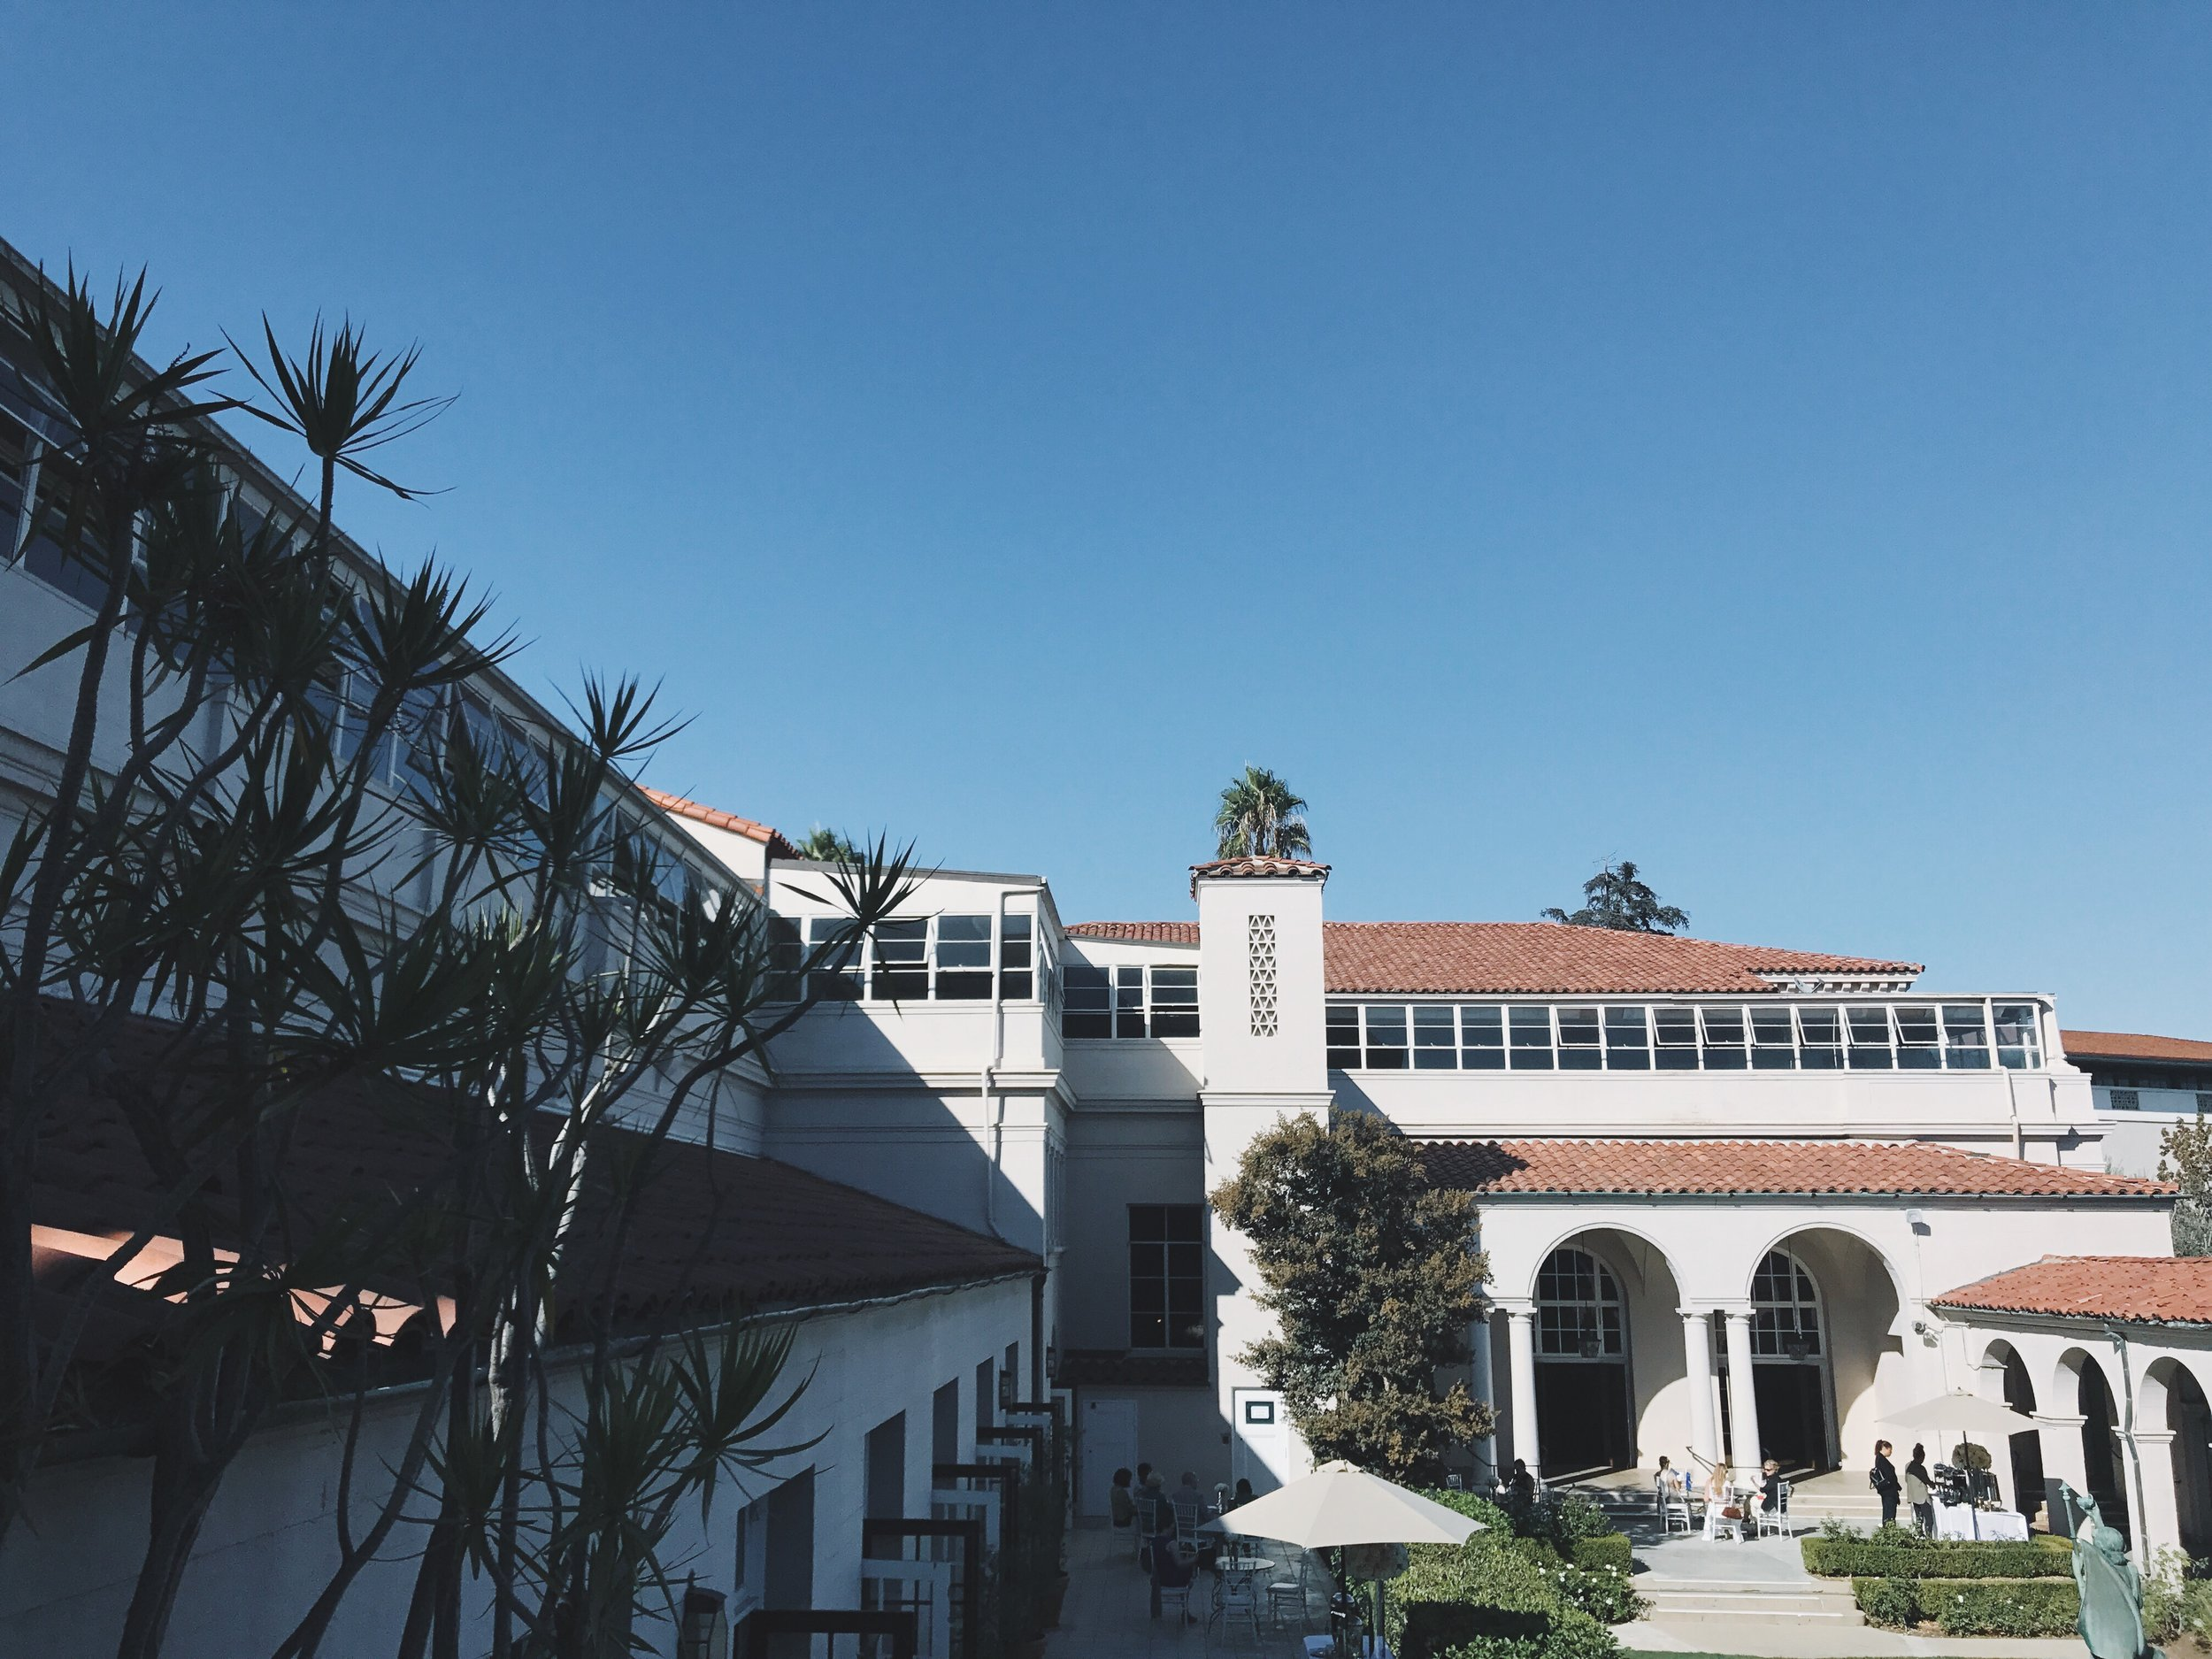 The Wilshire Ebell Clubhouse